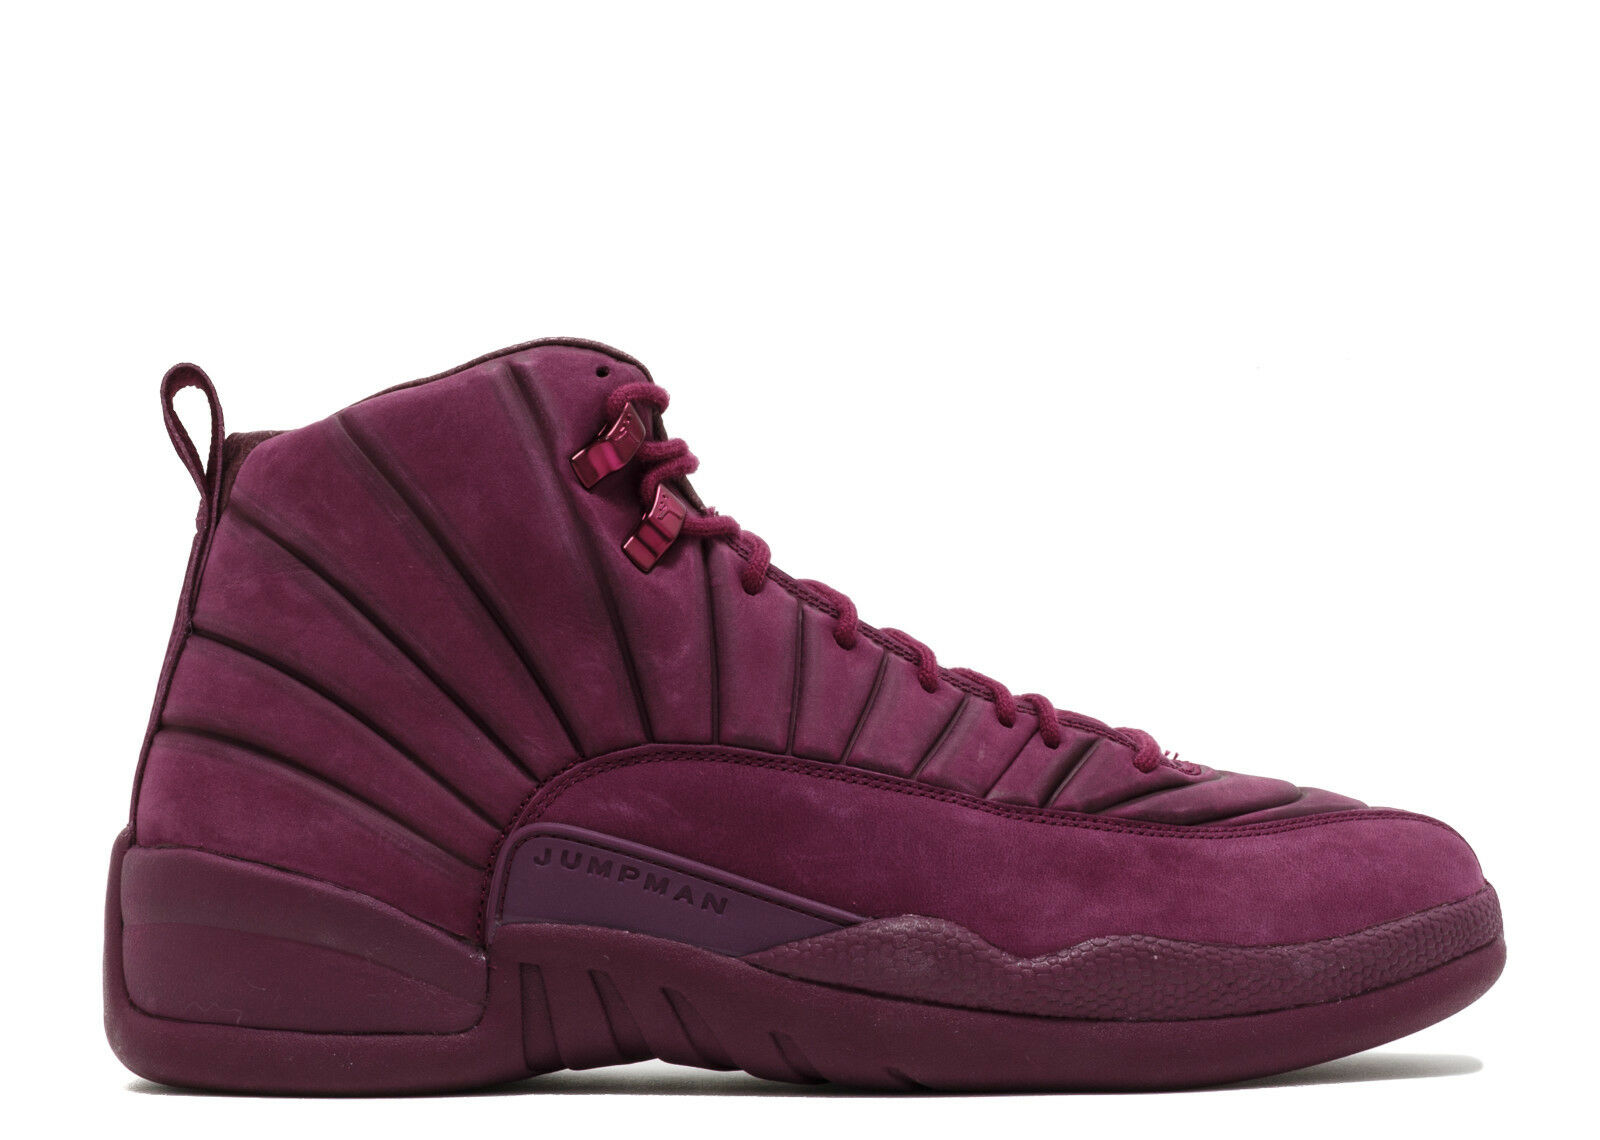 Nike Air Jordan 12 Retro PSNY Bordeaux Paris Size 8.5. AA1233-600